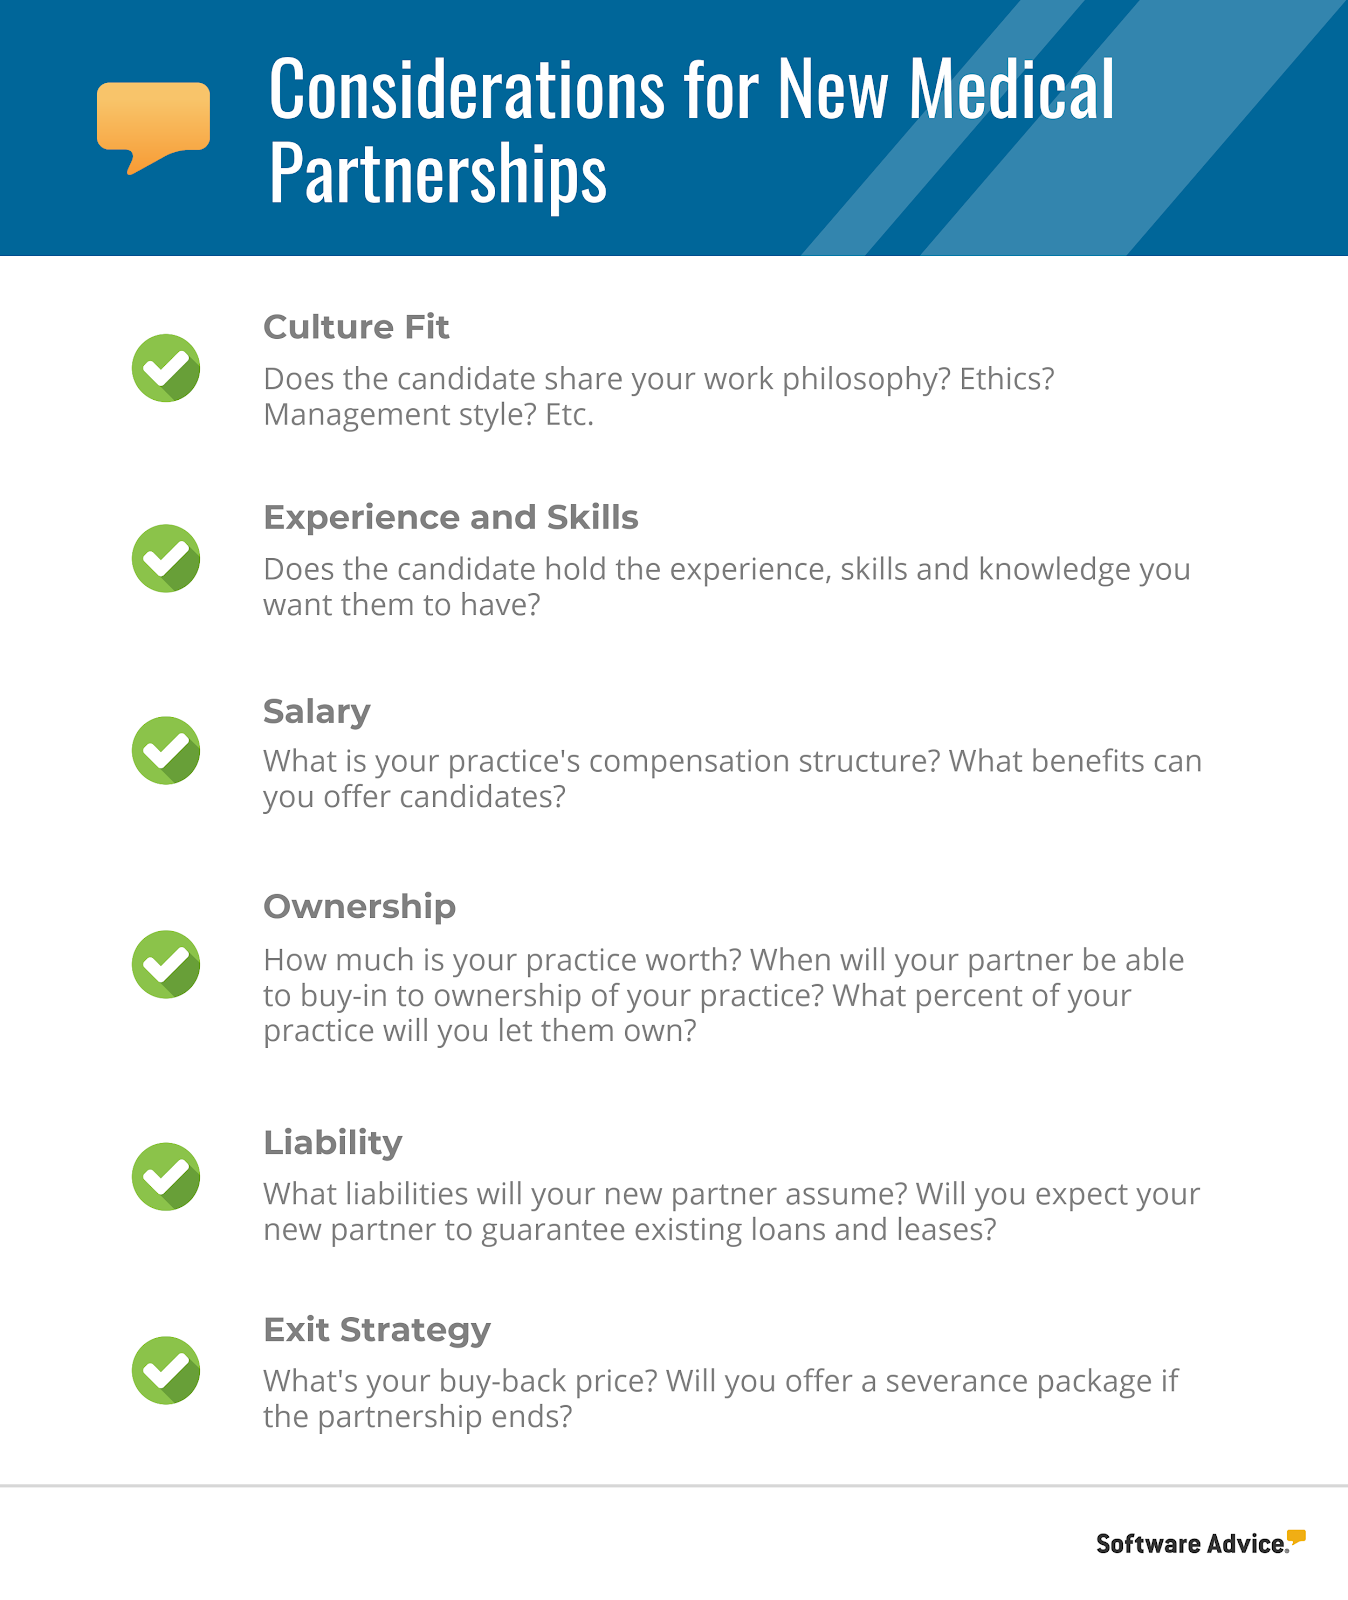 New Medical Partnership Considerations Checklist